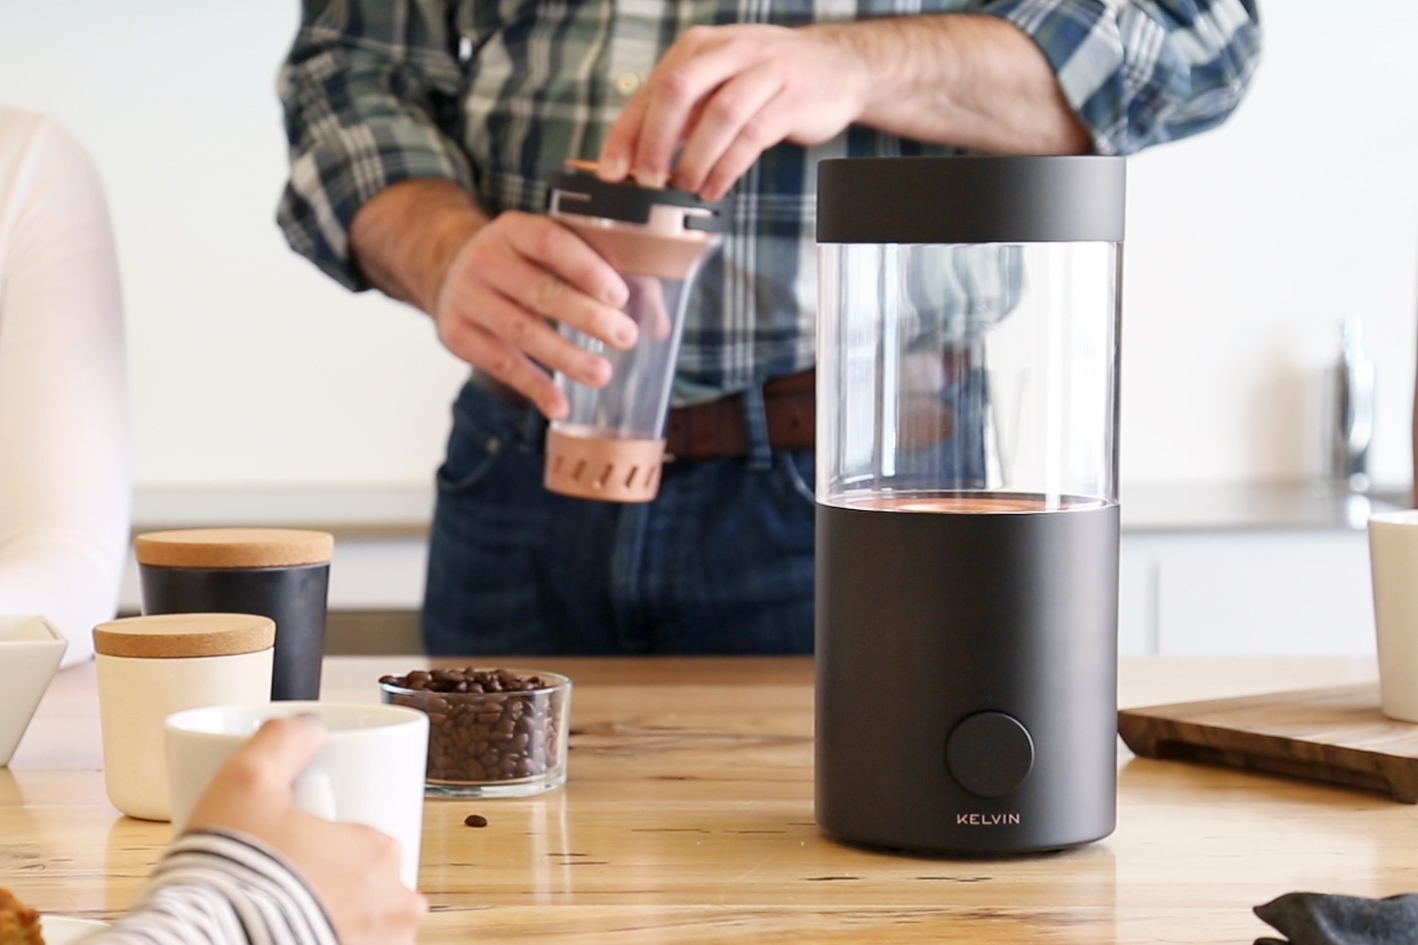 Elegant design - Kelvin is for everybody; designed for the first-time explorer to the seasoned do-it-yourself coffee aficionado. It's now easy for everyone to experiment and discover the amazing complexity of craft coffee with set-and-go, perfectly roasted beans at any time of the day.